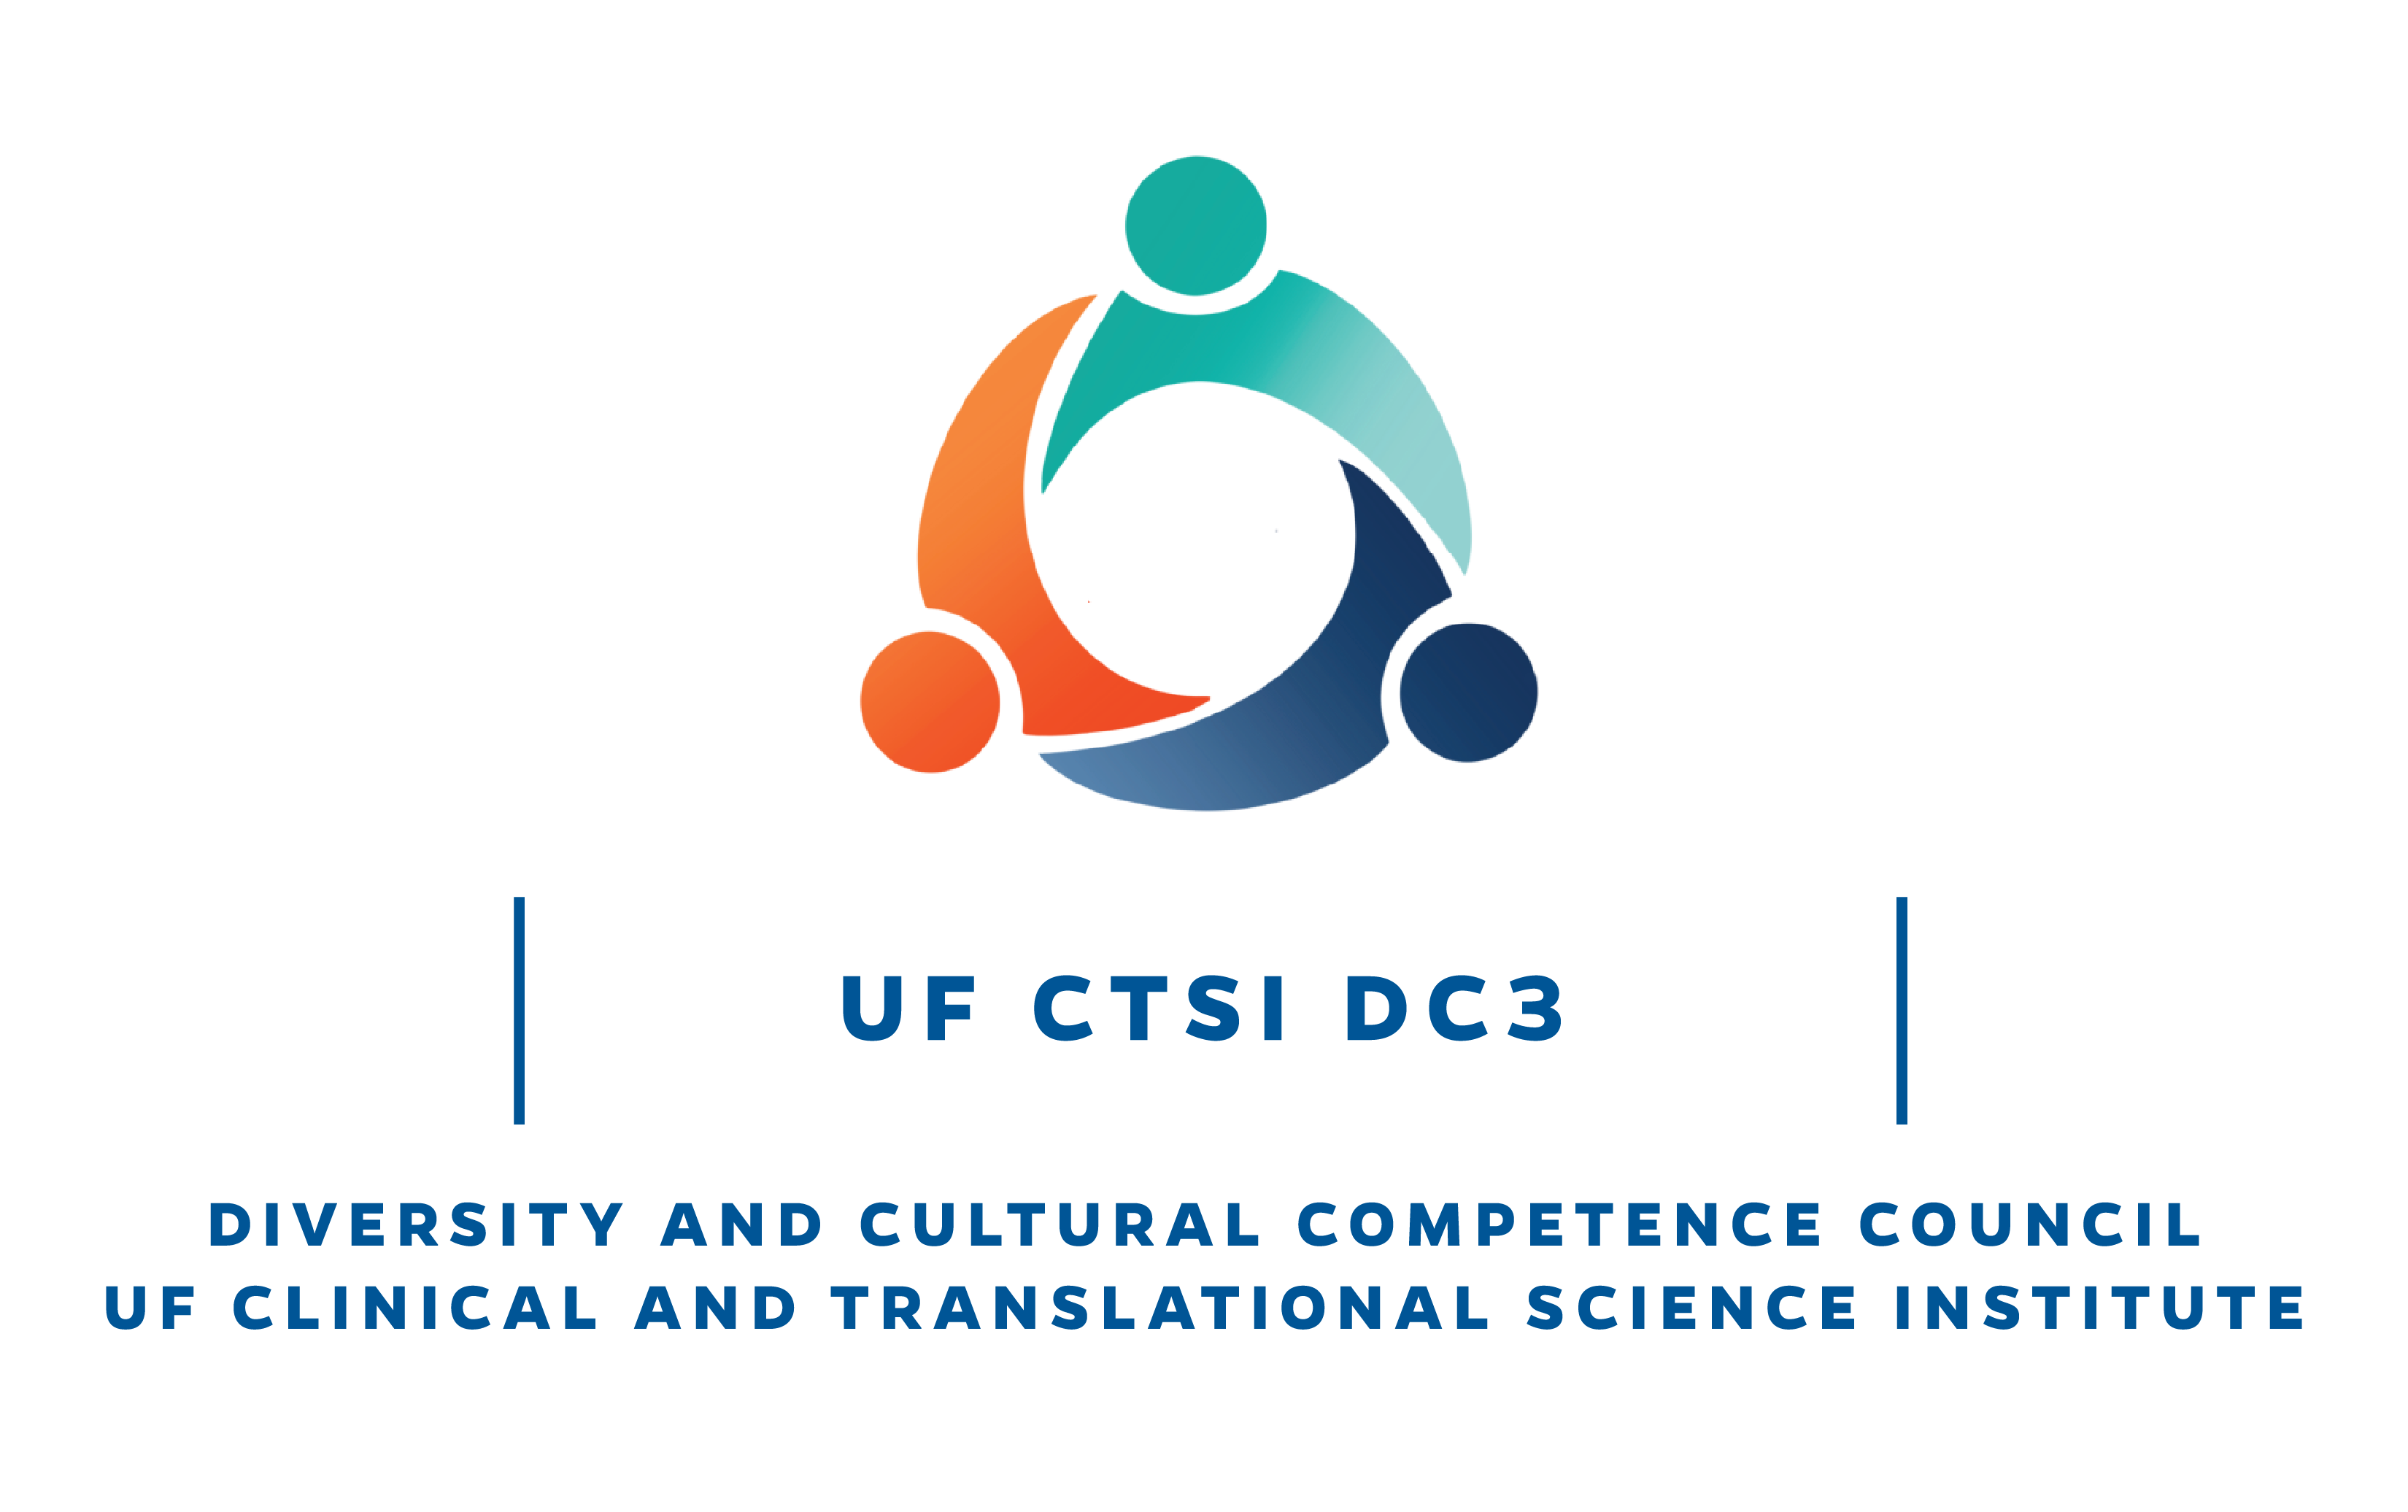 A logo for the University of Florida Clinical and Translational Science Institute Diversity and Cultural Competence Council